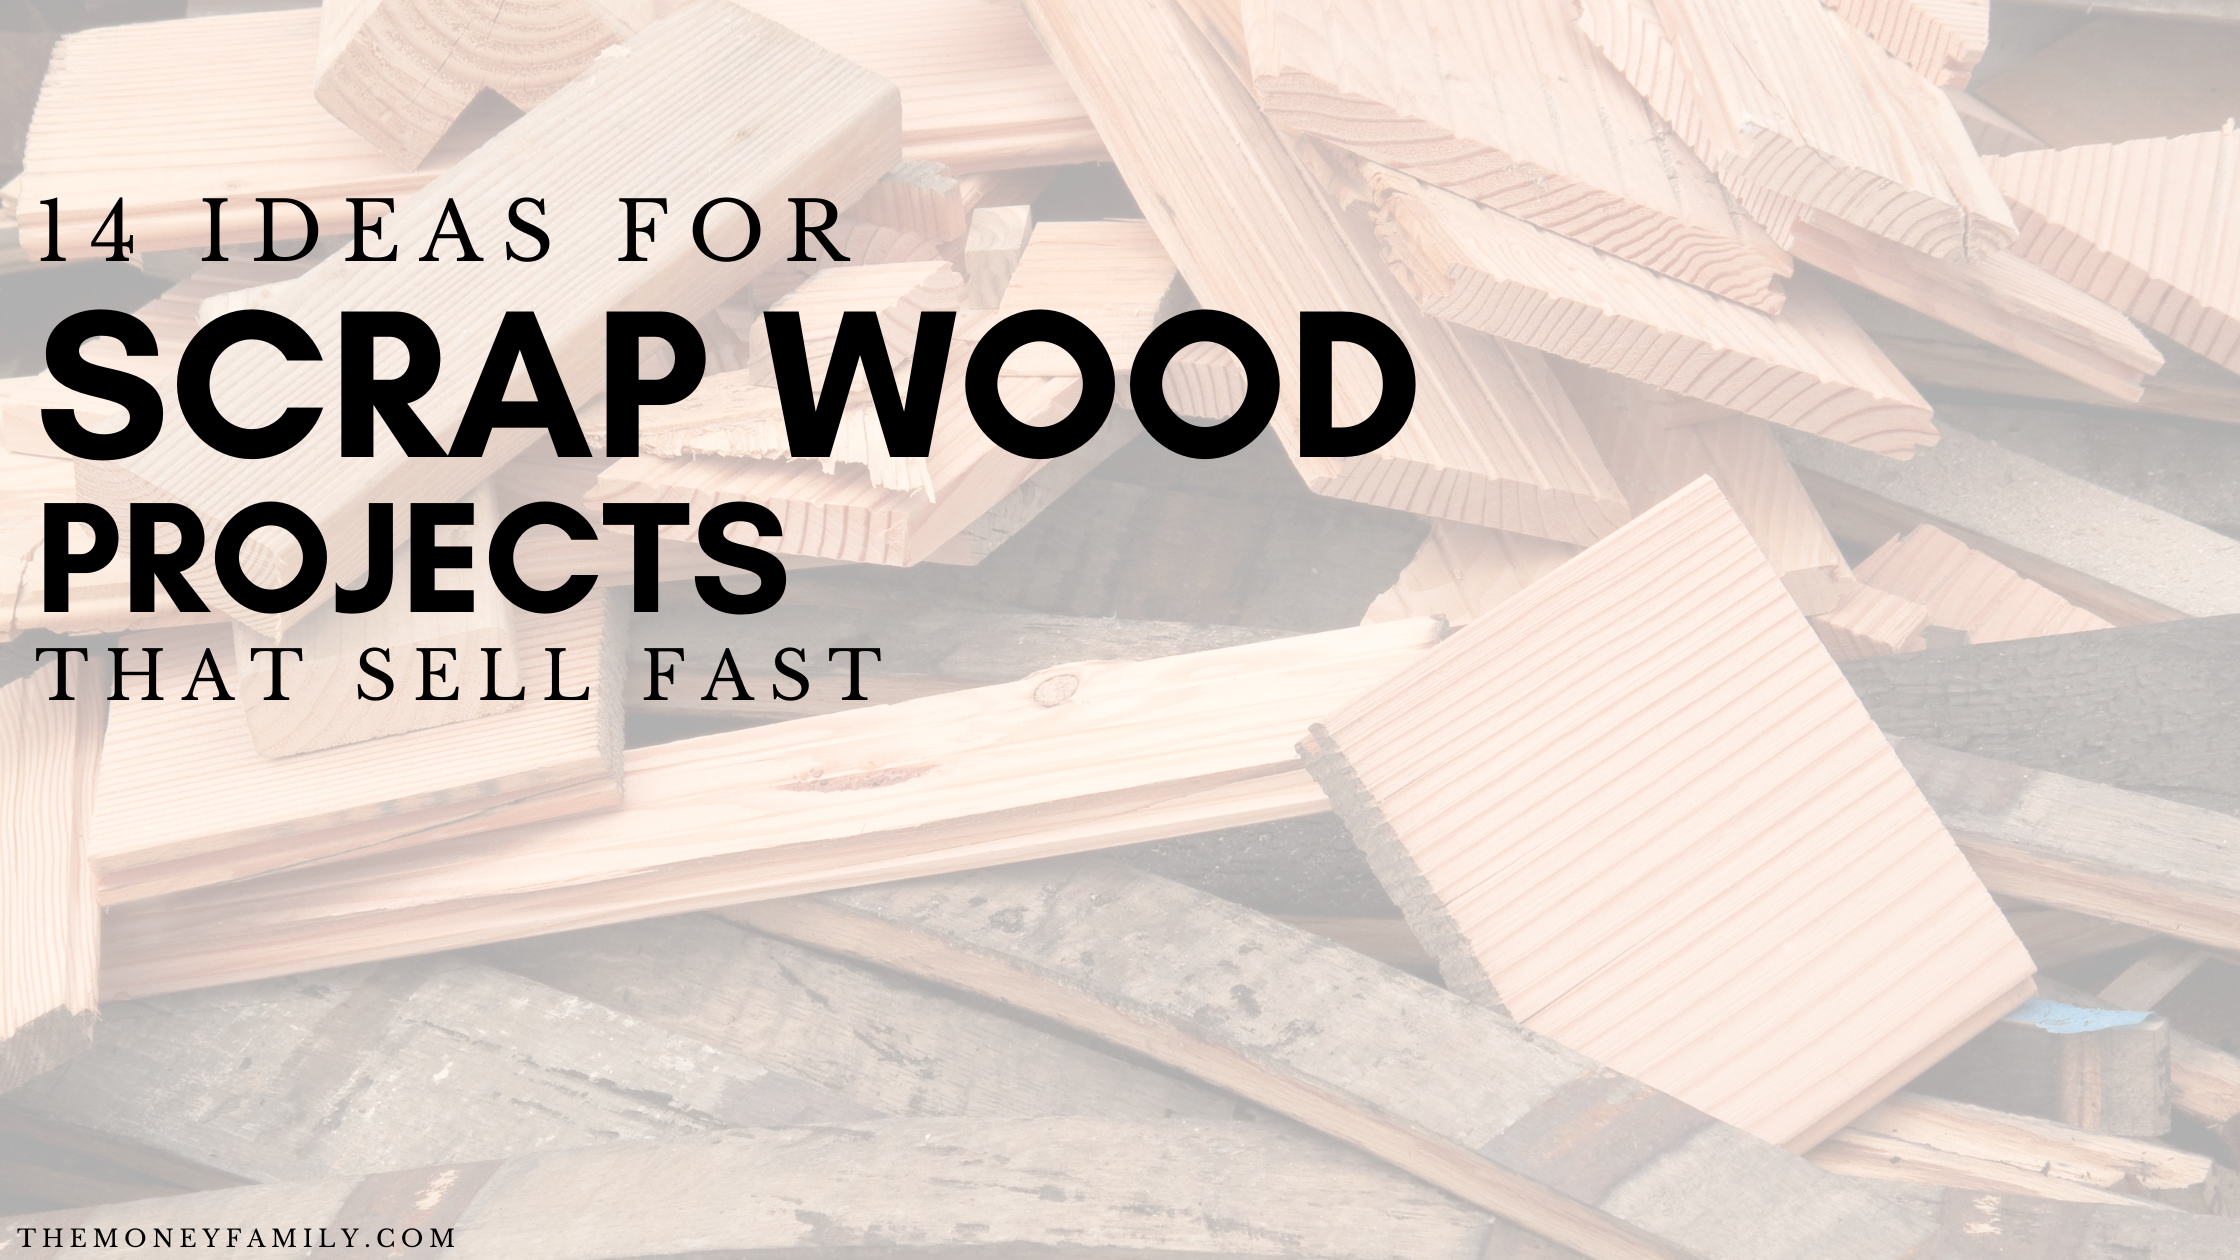 Scrap Wood Projects that Sell